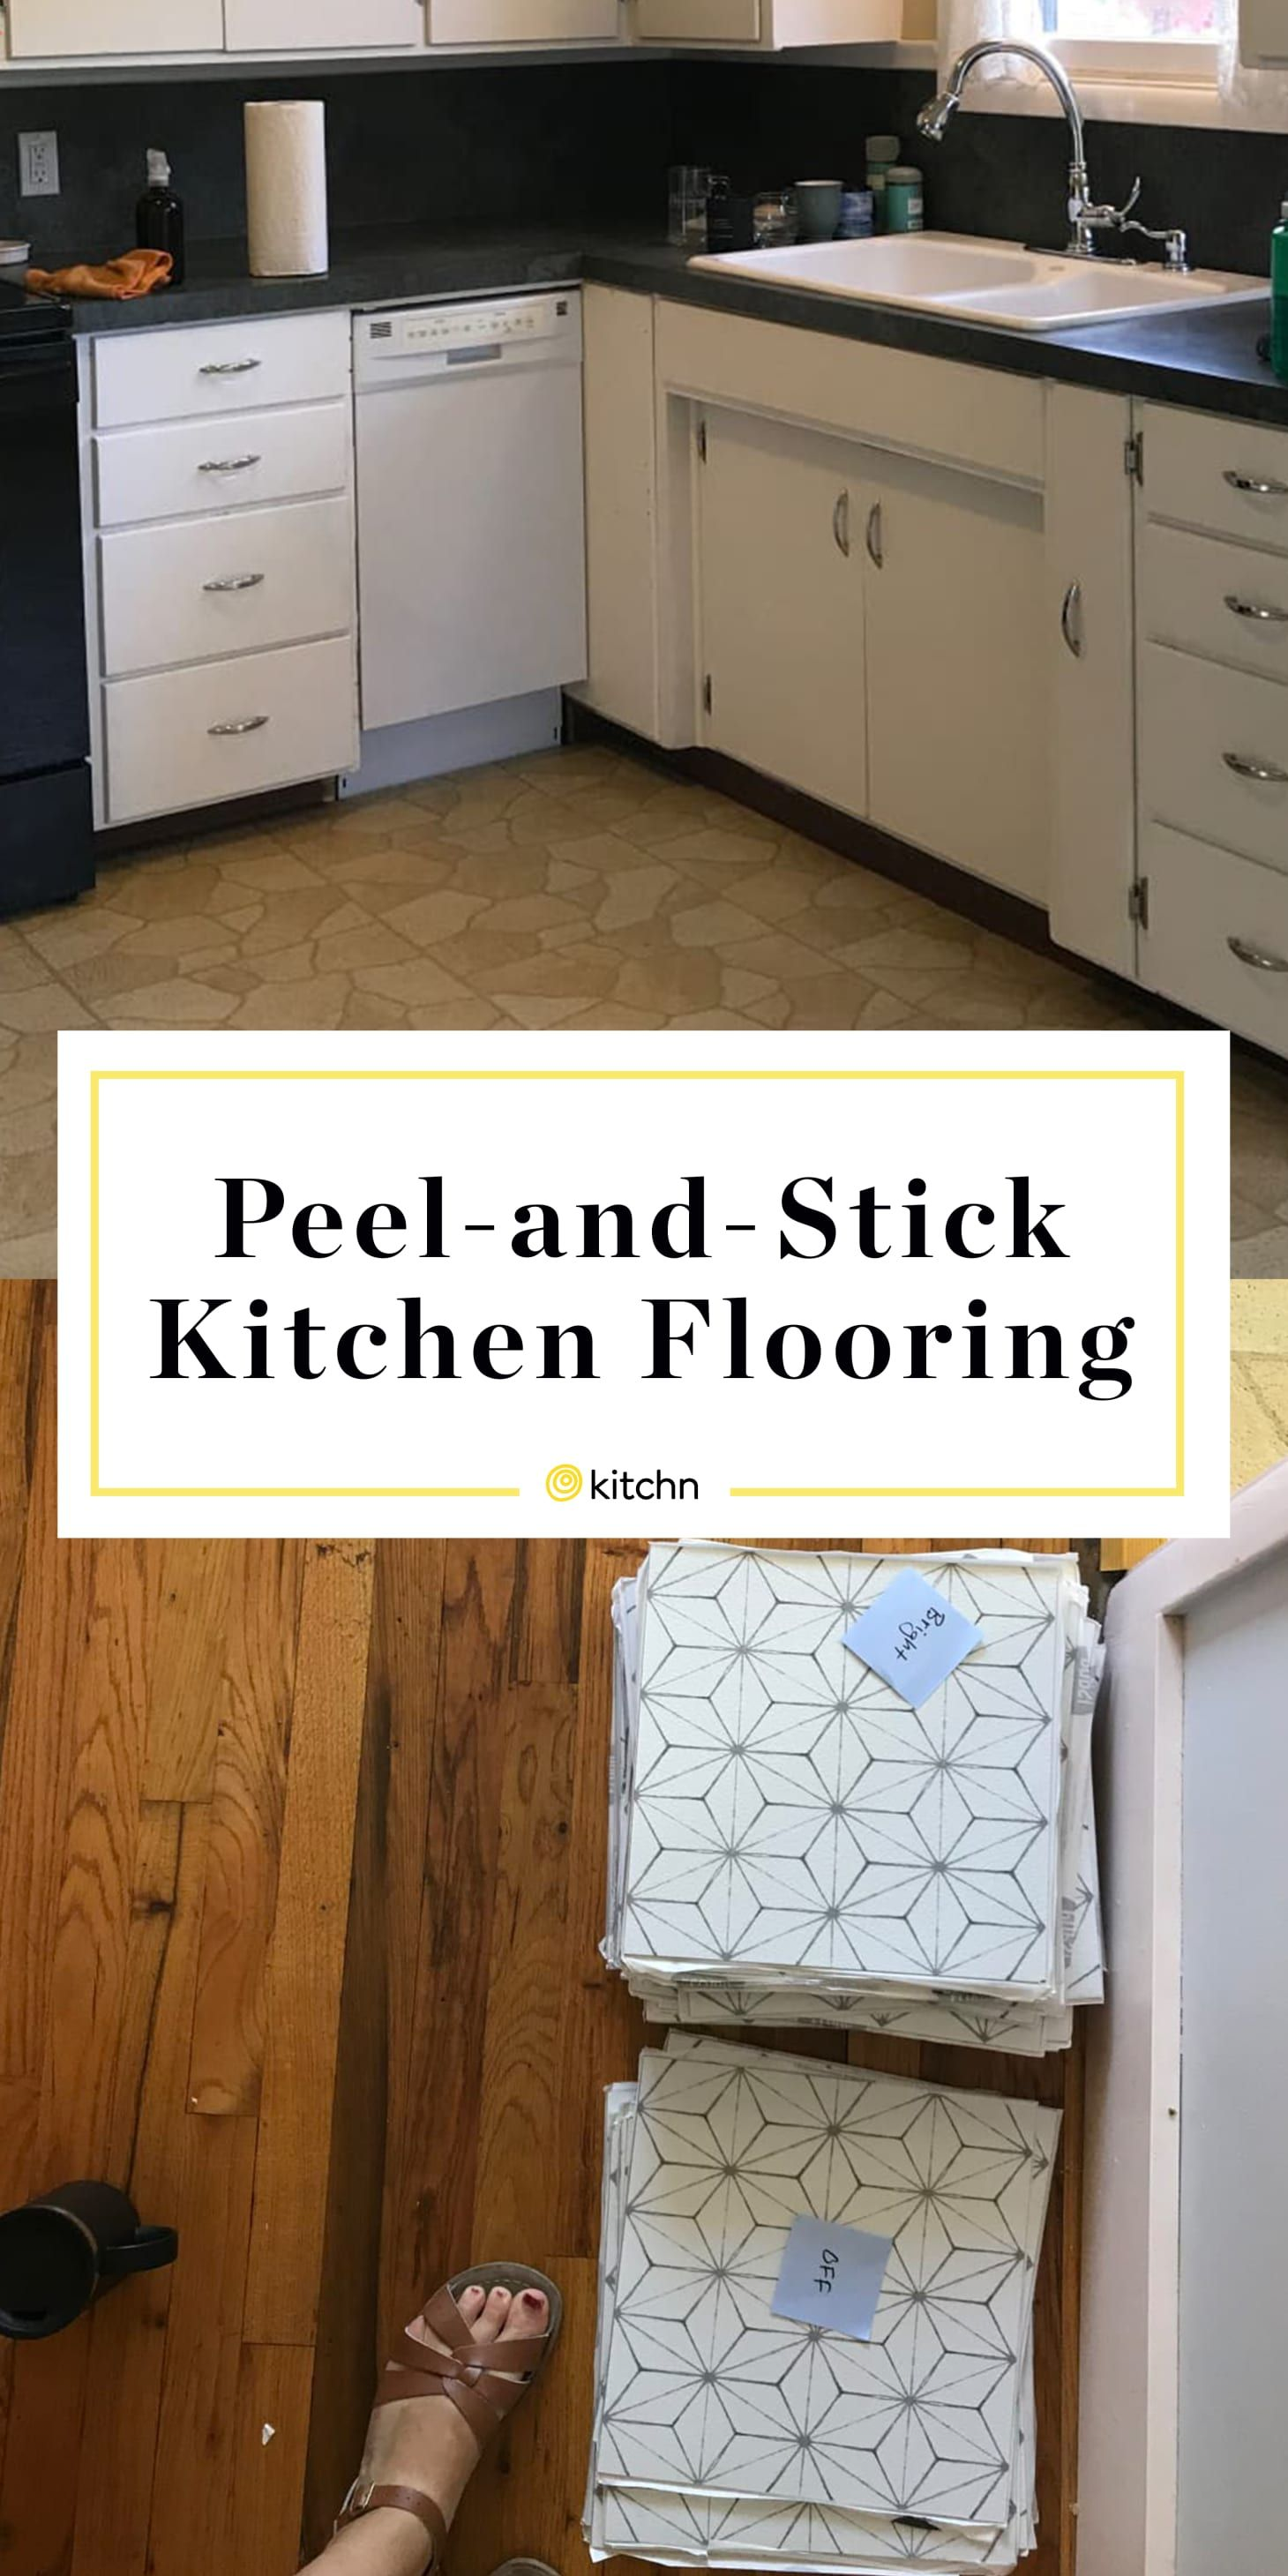 - Before & After: I Made Over My Kitchen With Peel-and-Stick Tiles